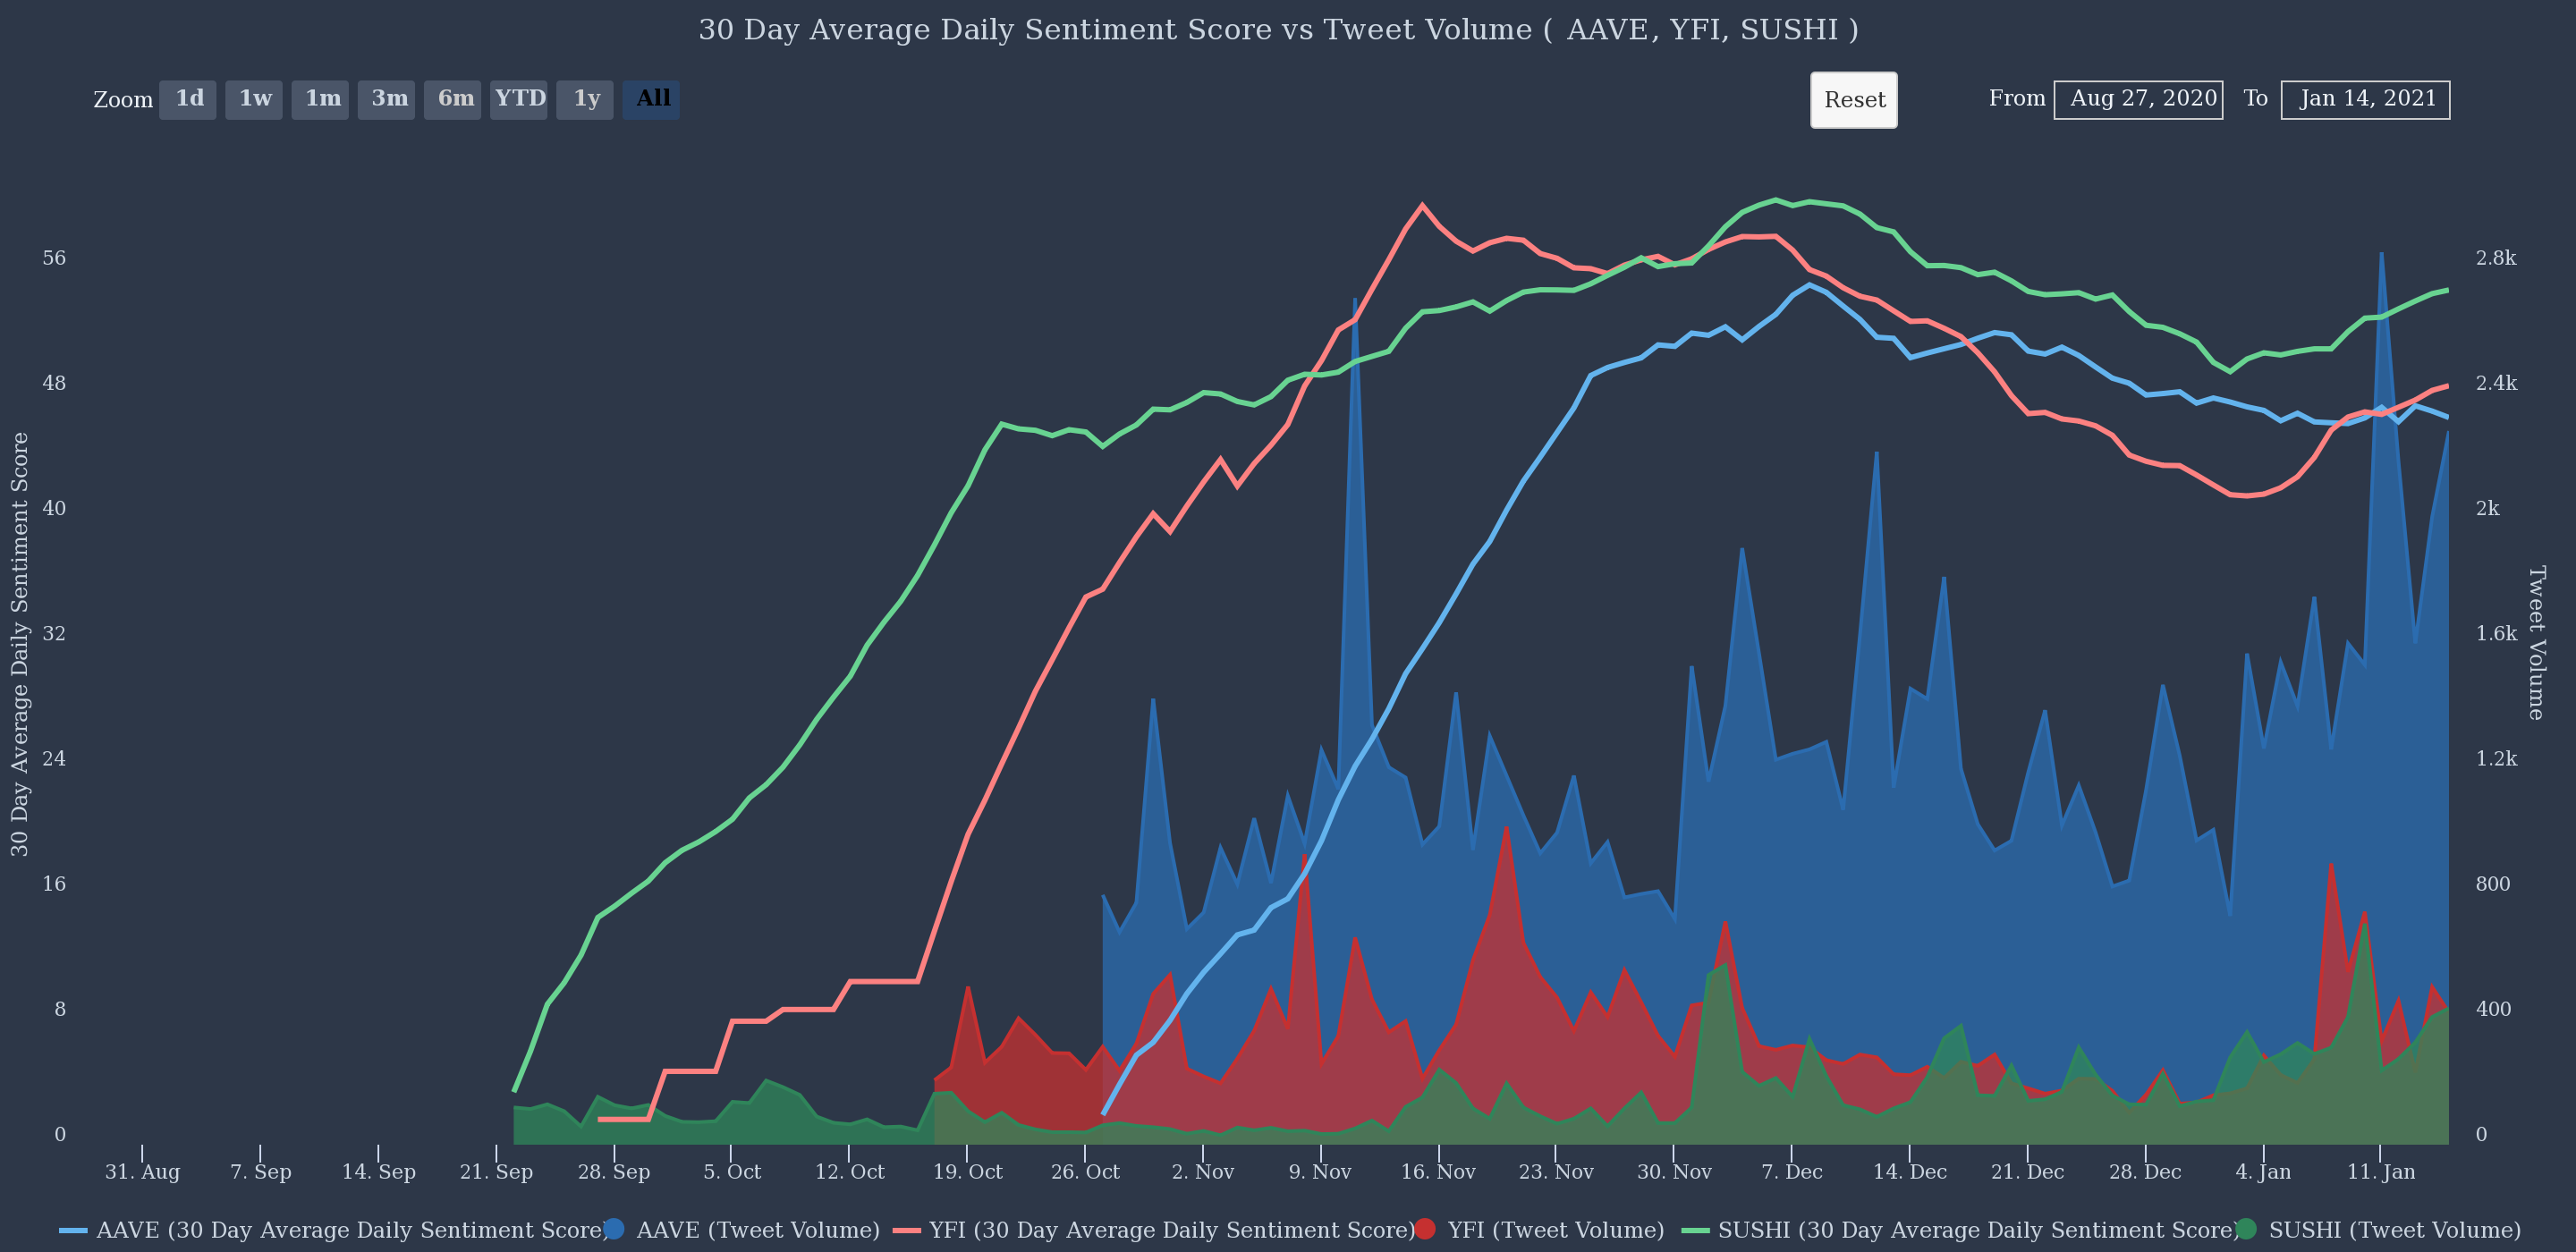 Sentiment giornaliero di Aave, YFI, Sushi vs. volume di Tweet.